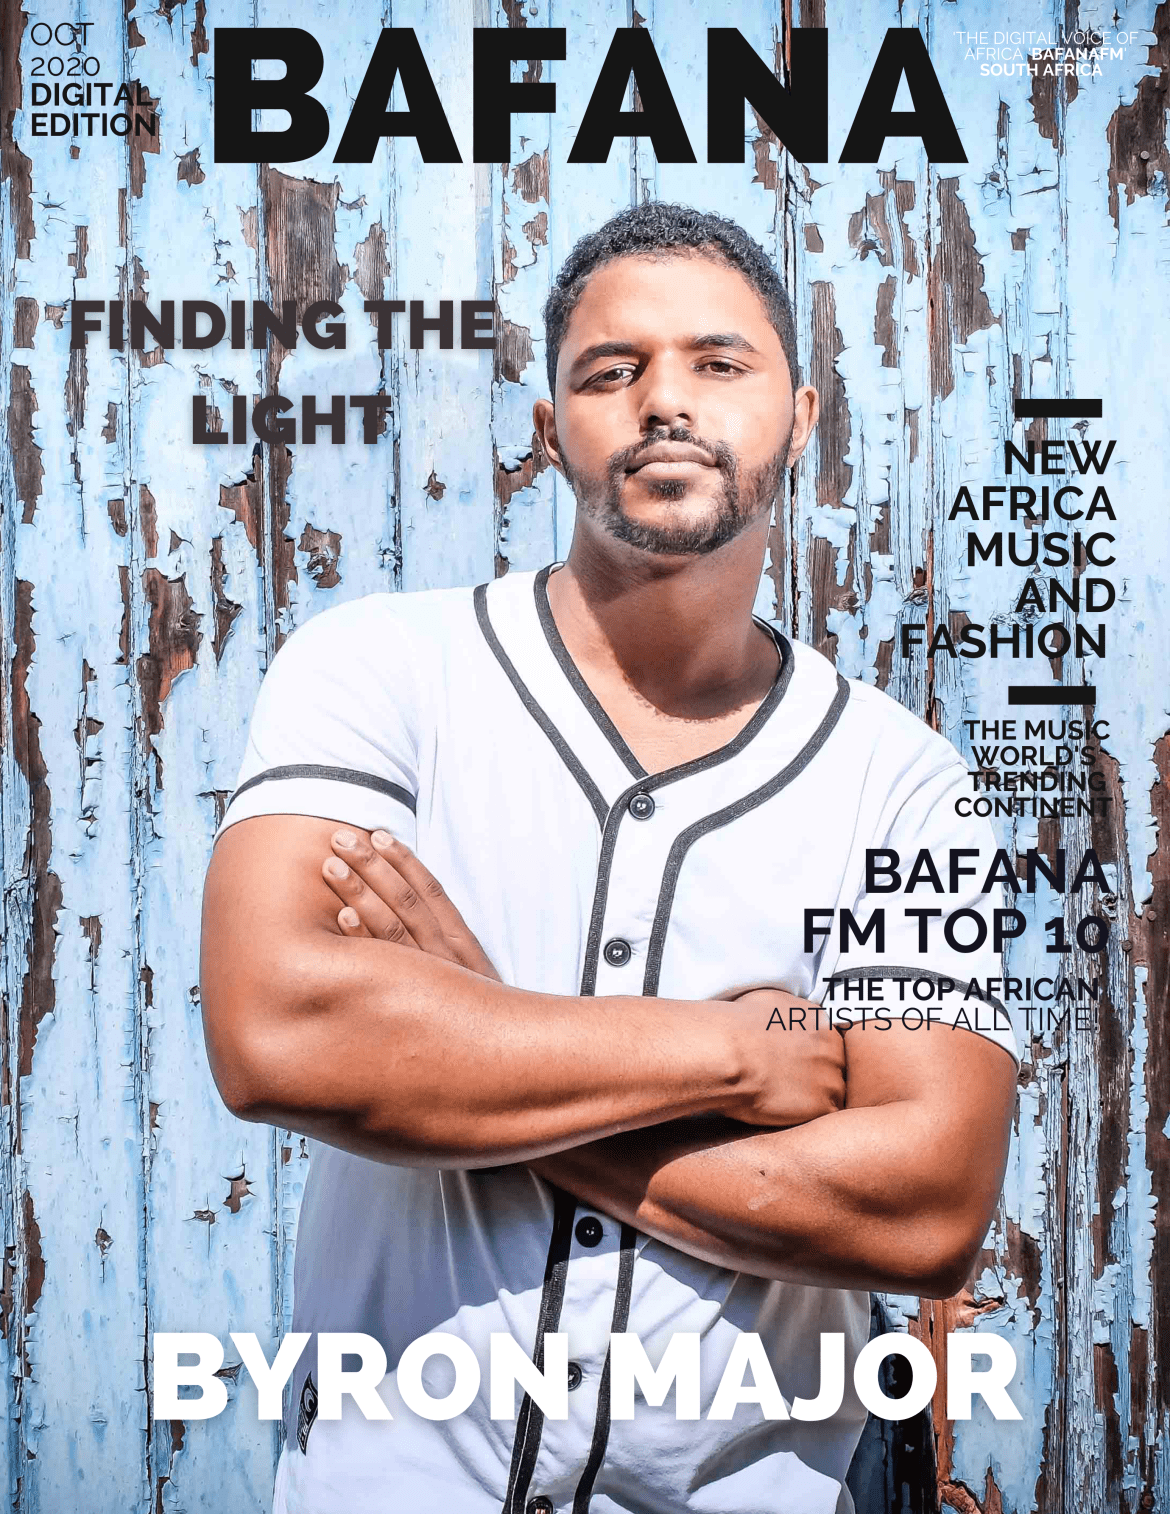 South Africa's 'Byron Major' is 'Finding the Light' with International success as he releases a tearjerking, heart wrenching, classic piano ballad of 'Stevie Wonder' and 'John Legend' Proportions.